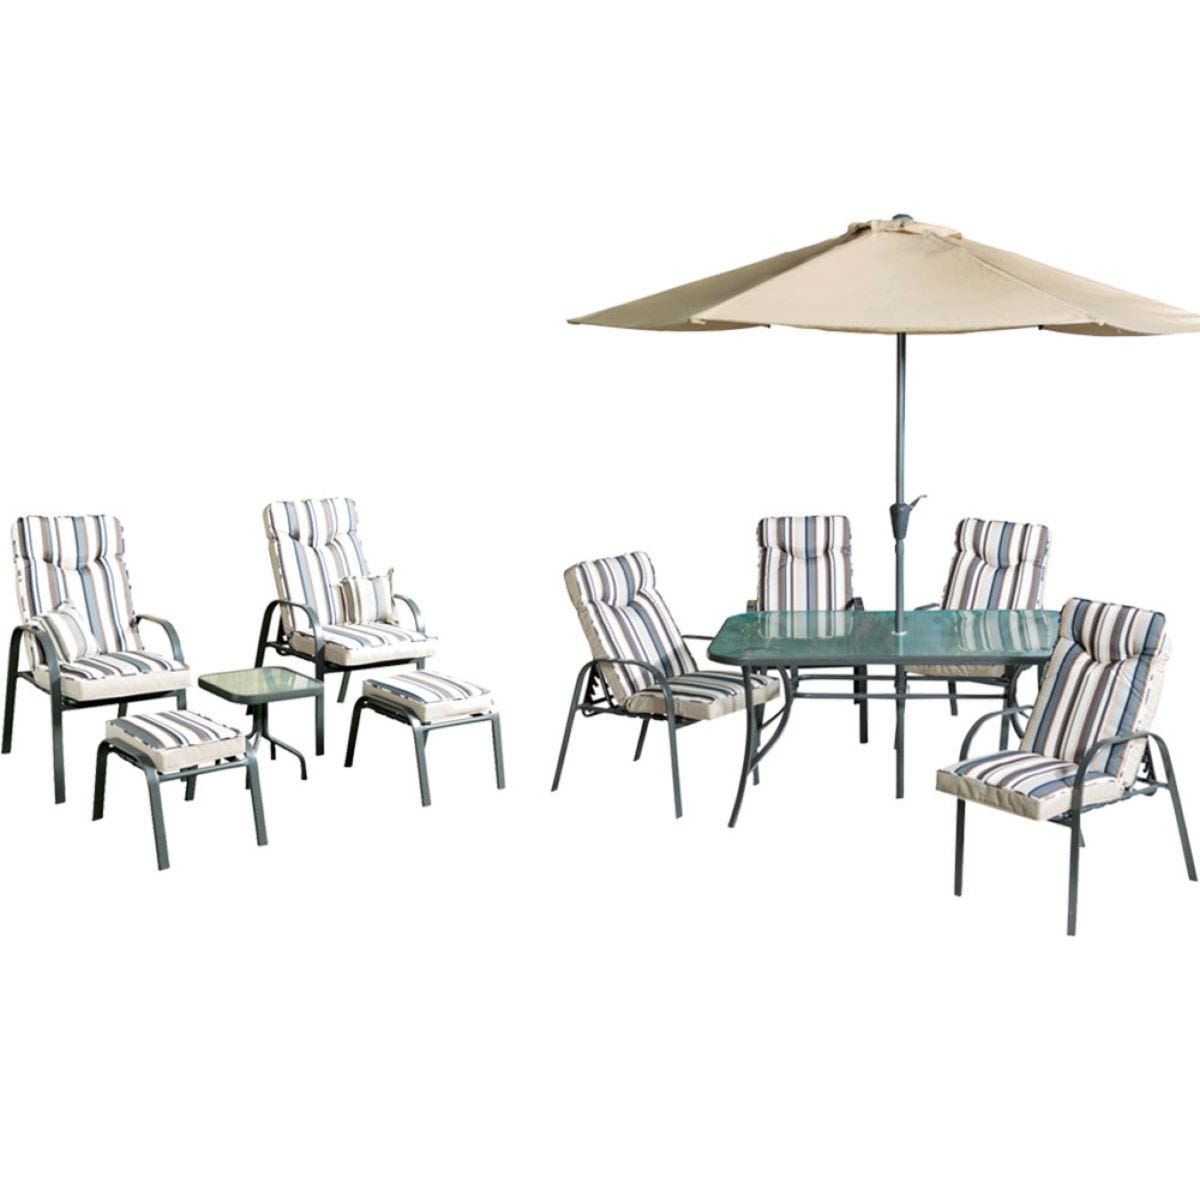 Provence 4-Seater Dining Set and 2-Seater Lounge Set